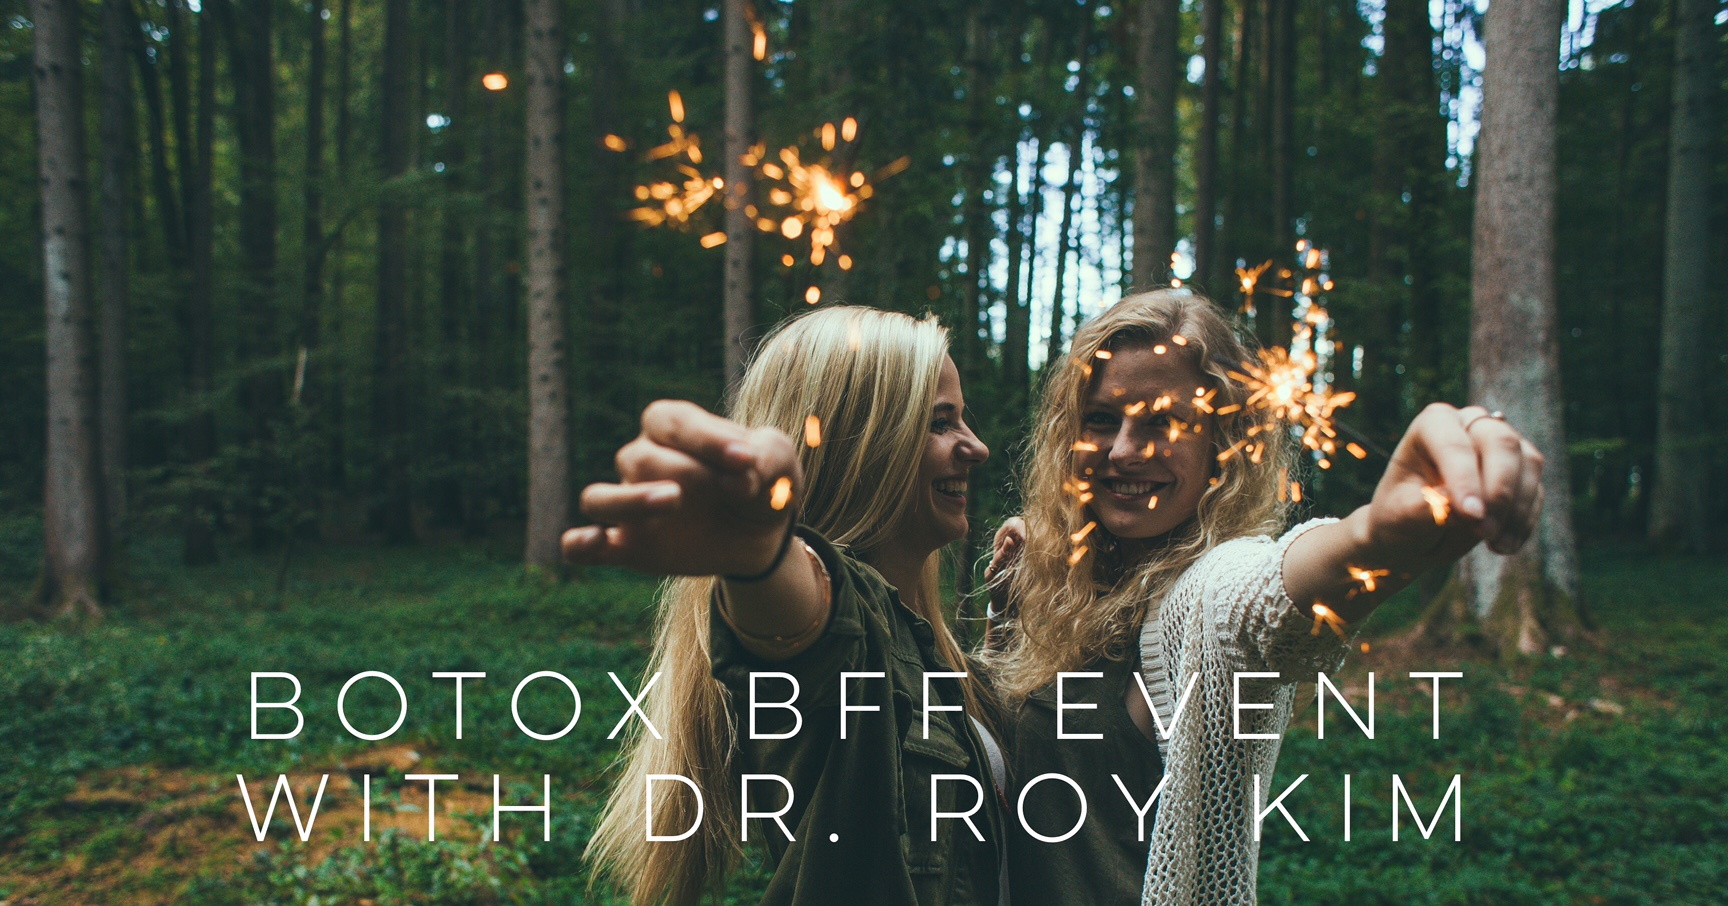 If You Get Botox-  Your Friend Gets FREE Botox!